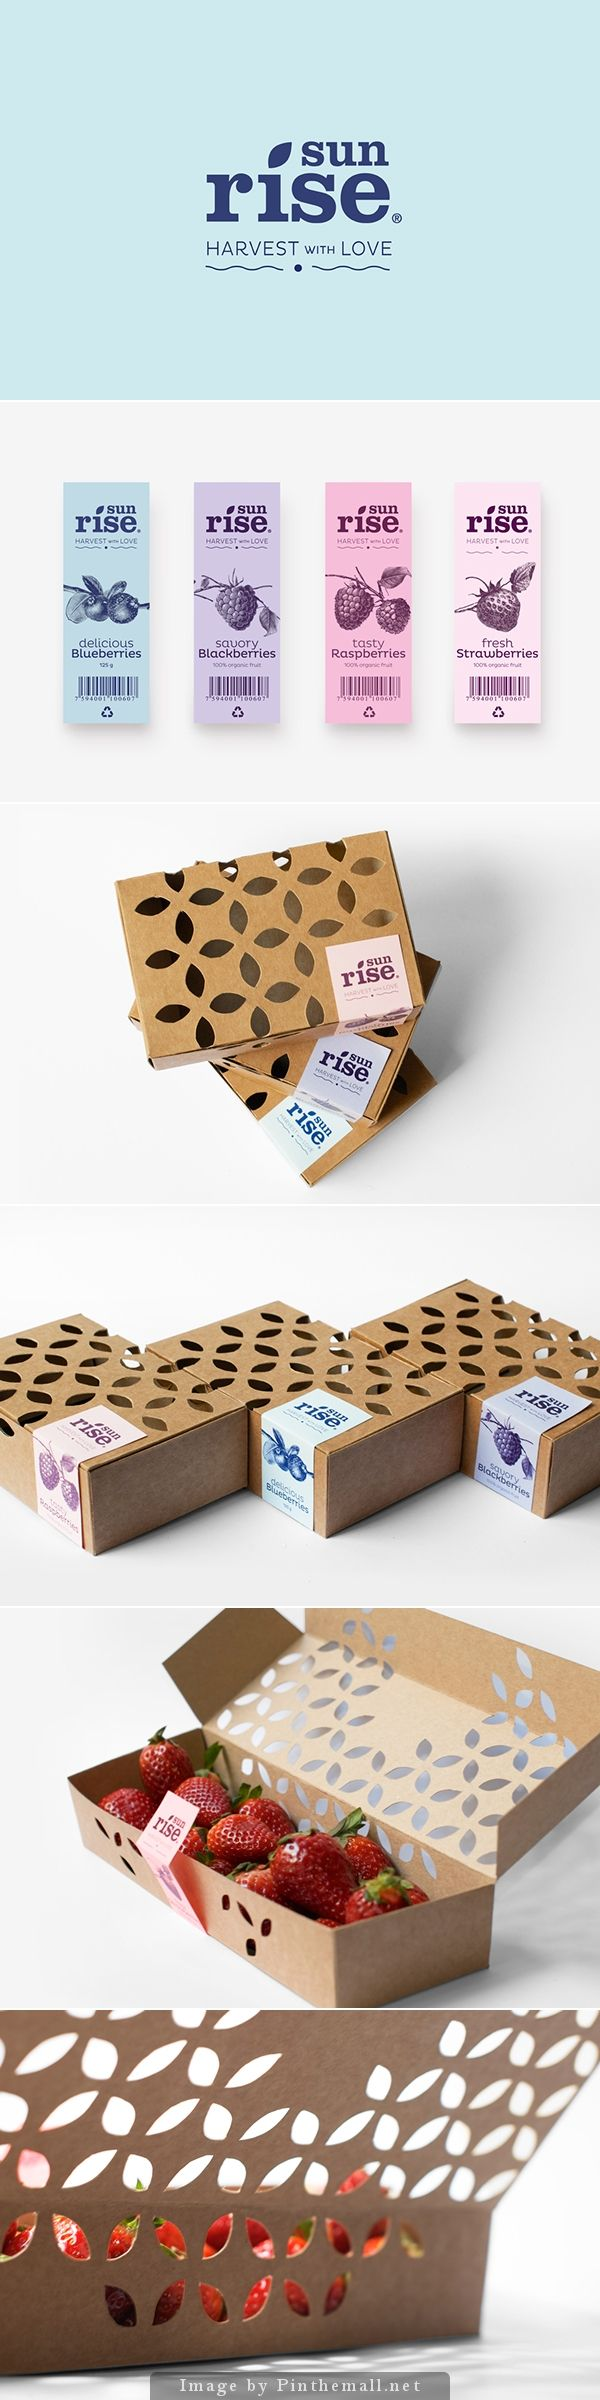 Sunrise berries (concept work carried out by ELISAVA graduate students) #packaging #design